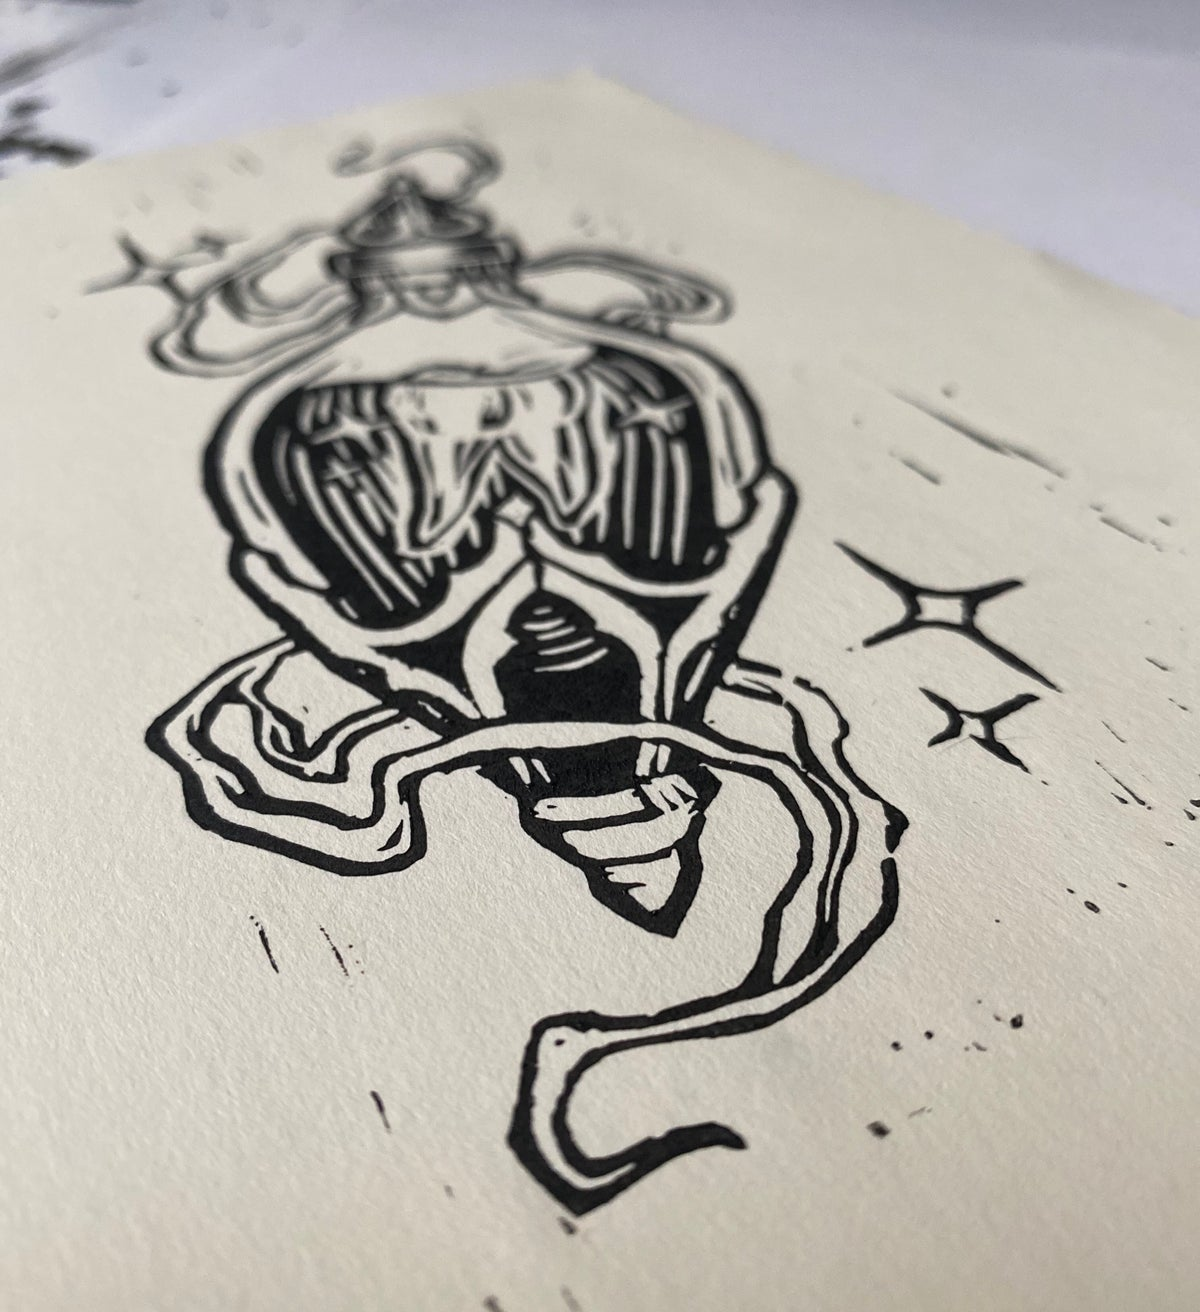 TOOTH POTION - RELIEF PRINT LIMITED EDITION